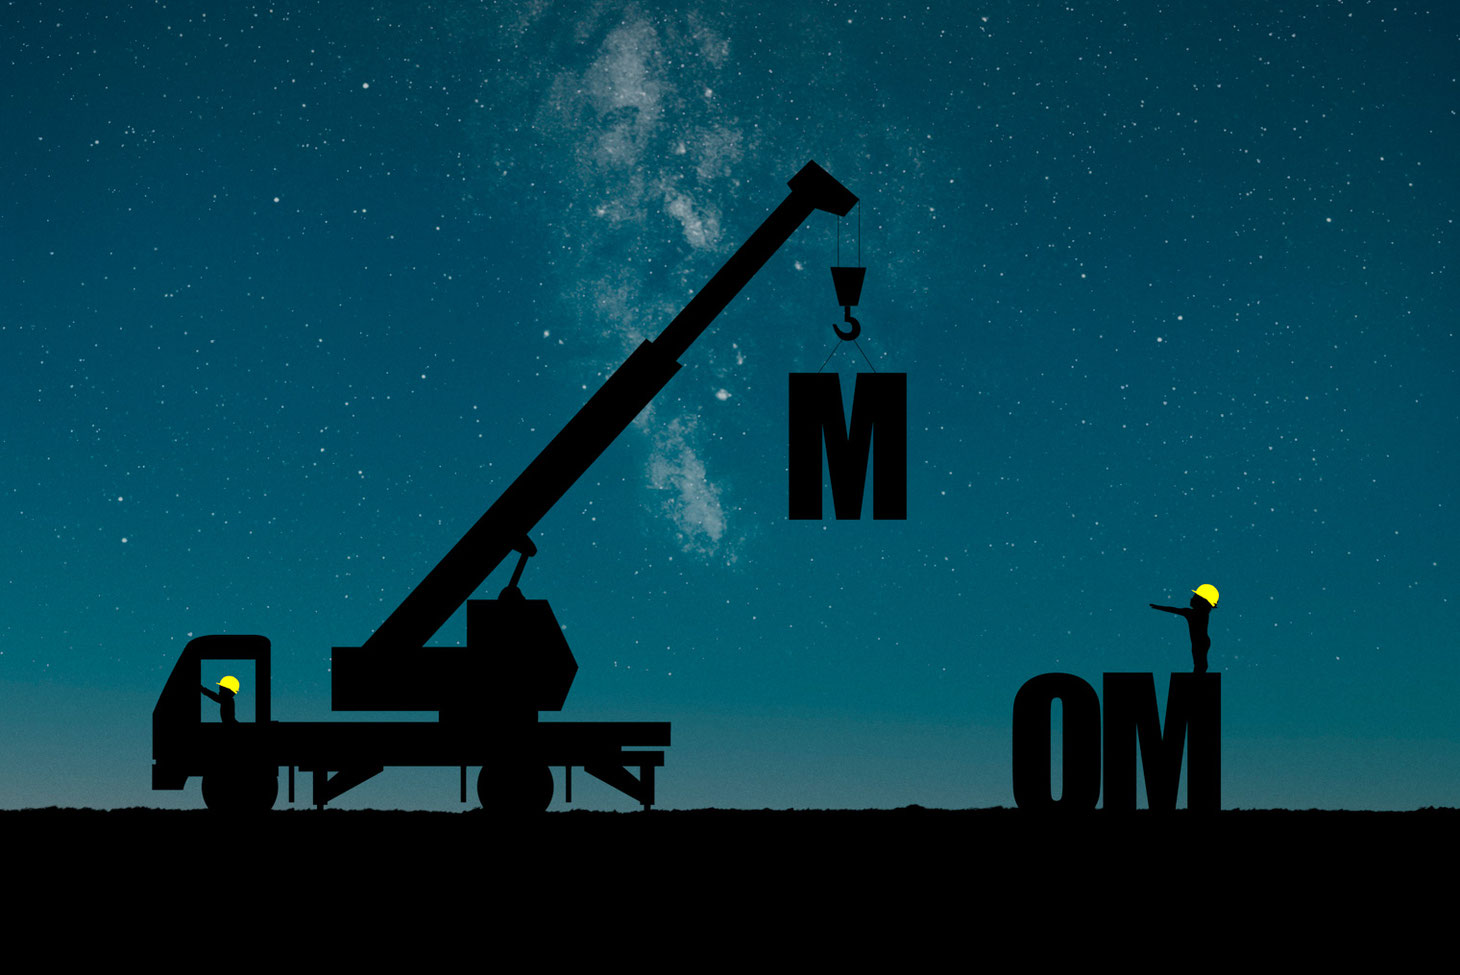 silhouettes of crane being driven by a child in a yellow hard hat. Crane is holding Letter M. On the ground are the letters OM with a child standing on top of the M wearing a yellow hard hat. The sky shows the milky way.